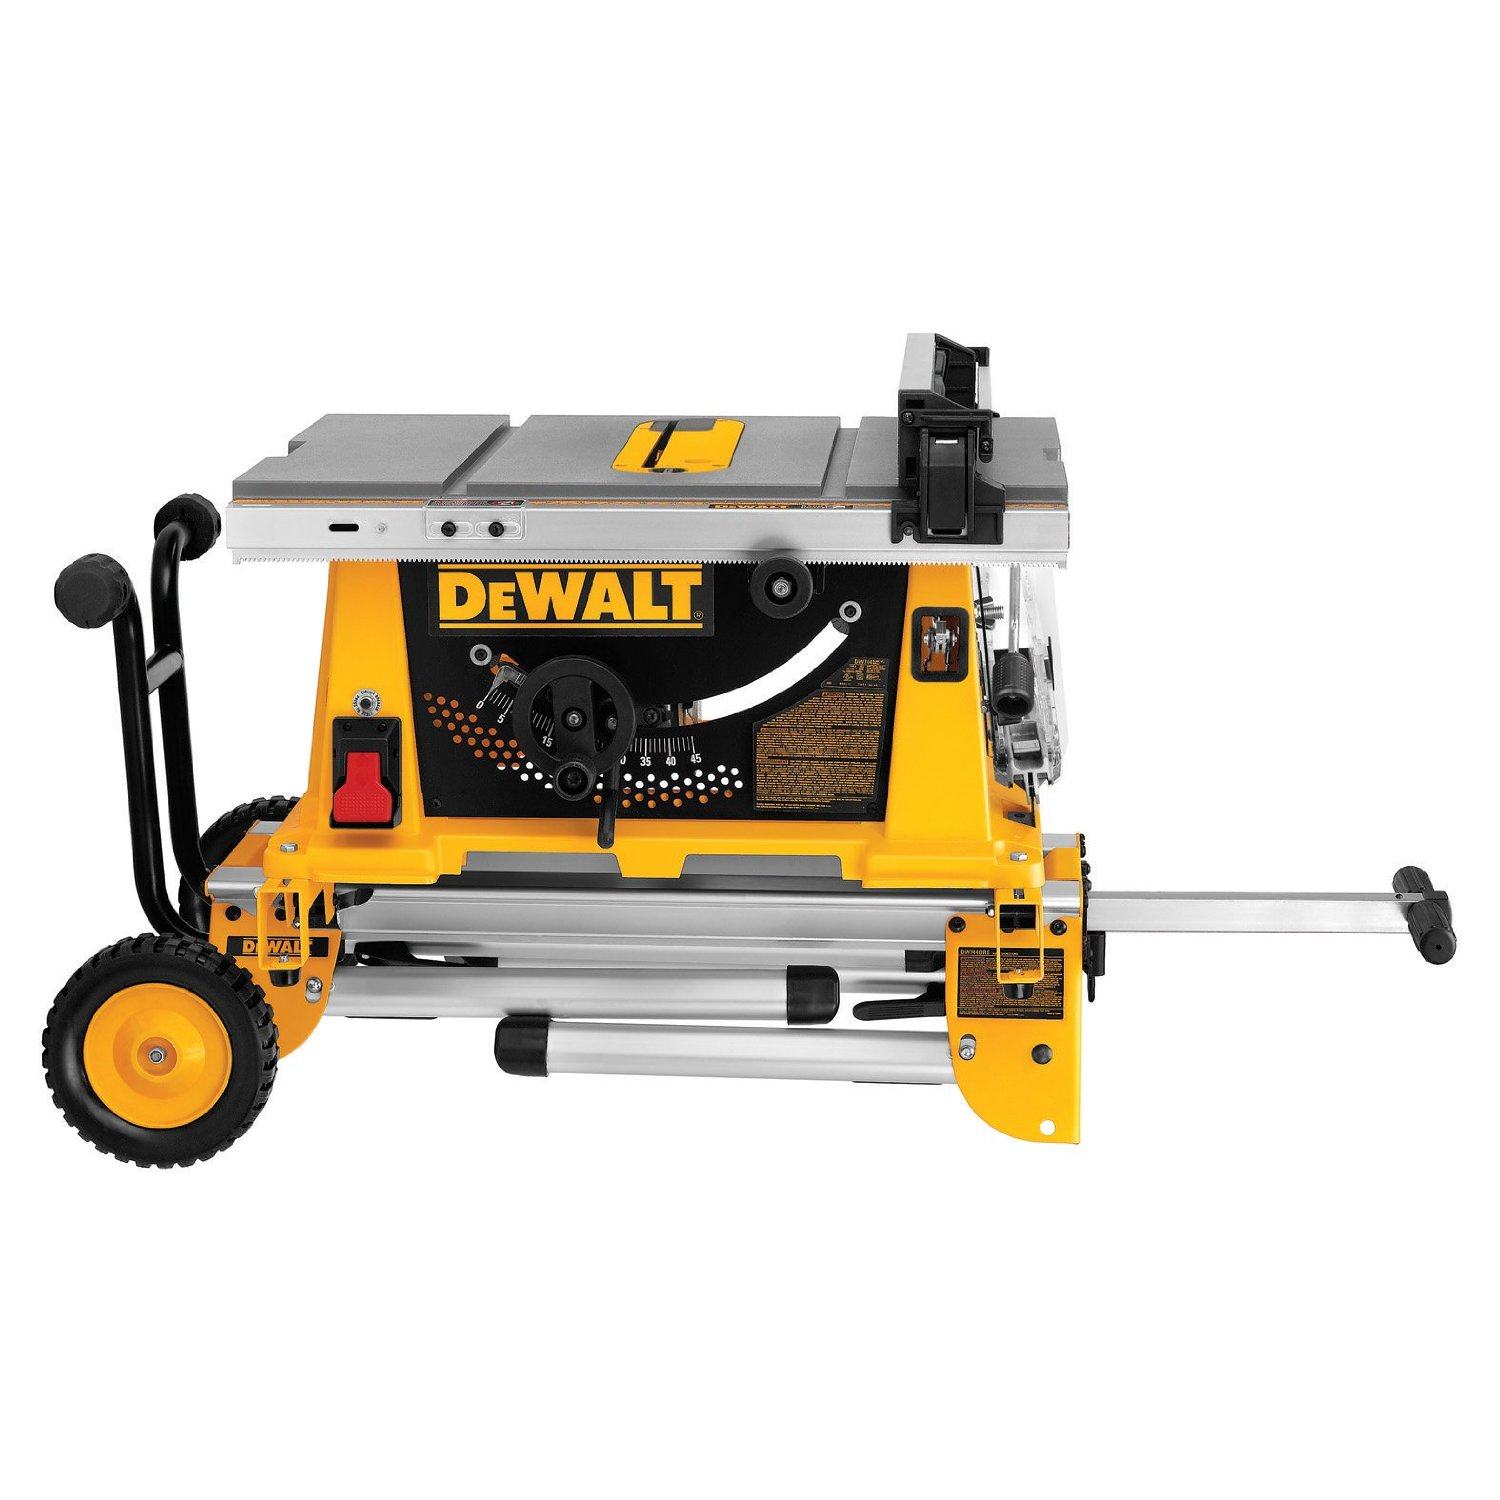 DEWALT-DW744XRS-10-inch-Table-Rolling